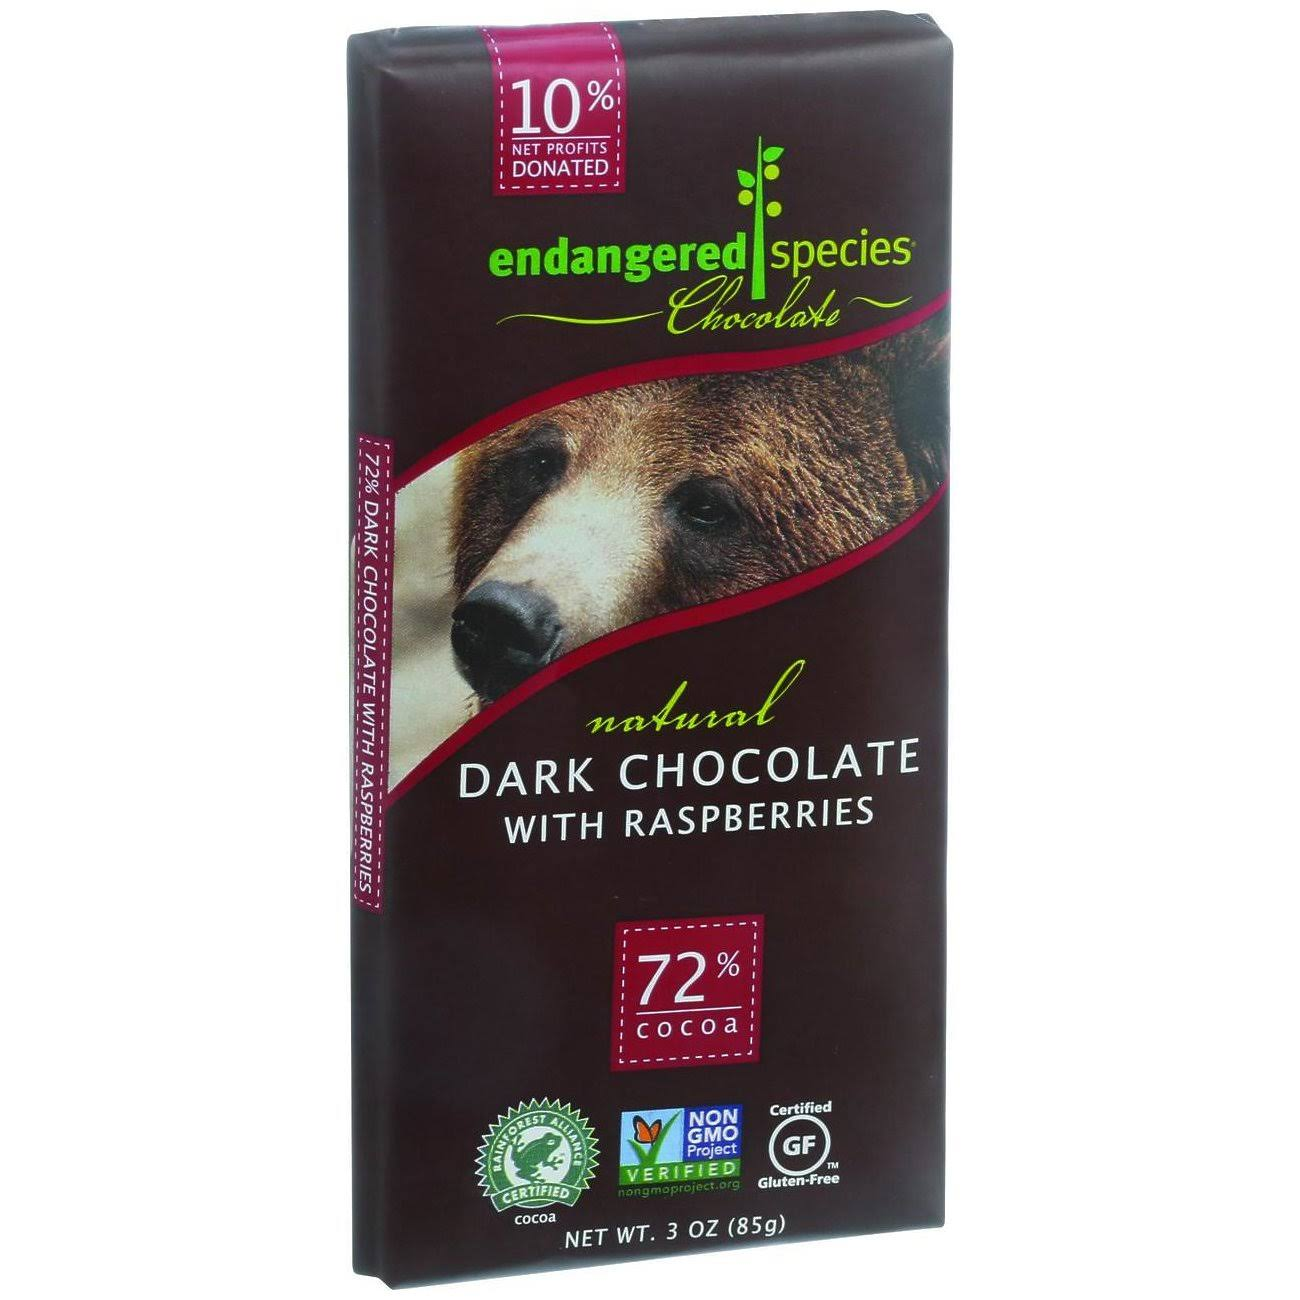 Endangered Species Dark Chocolate With Raspberries - 85g